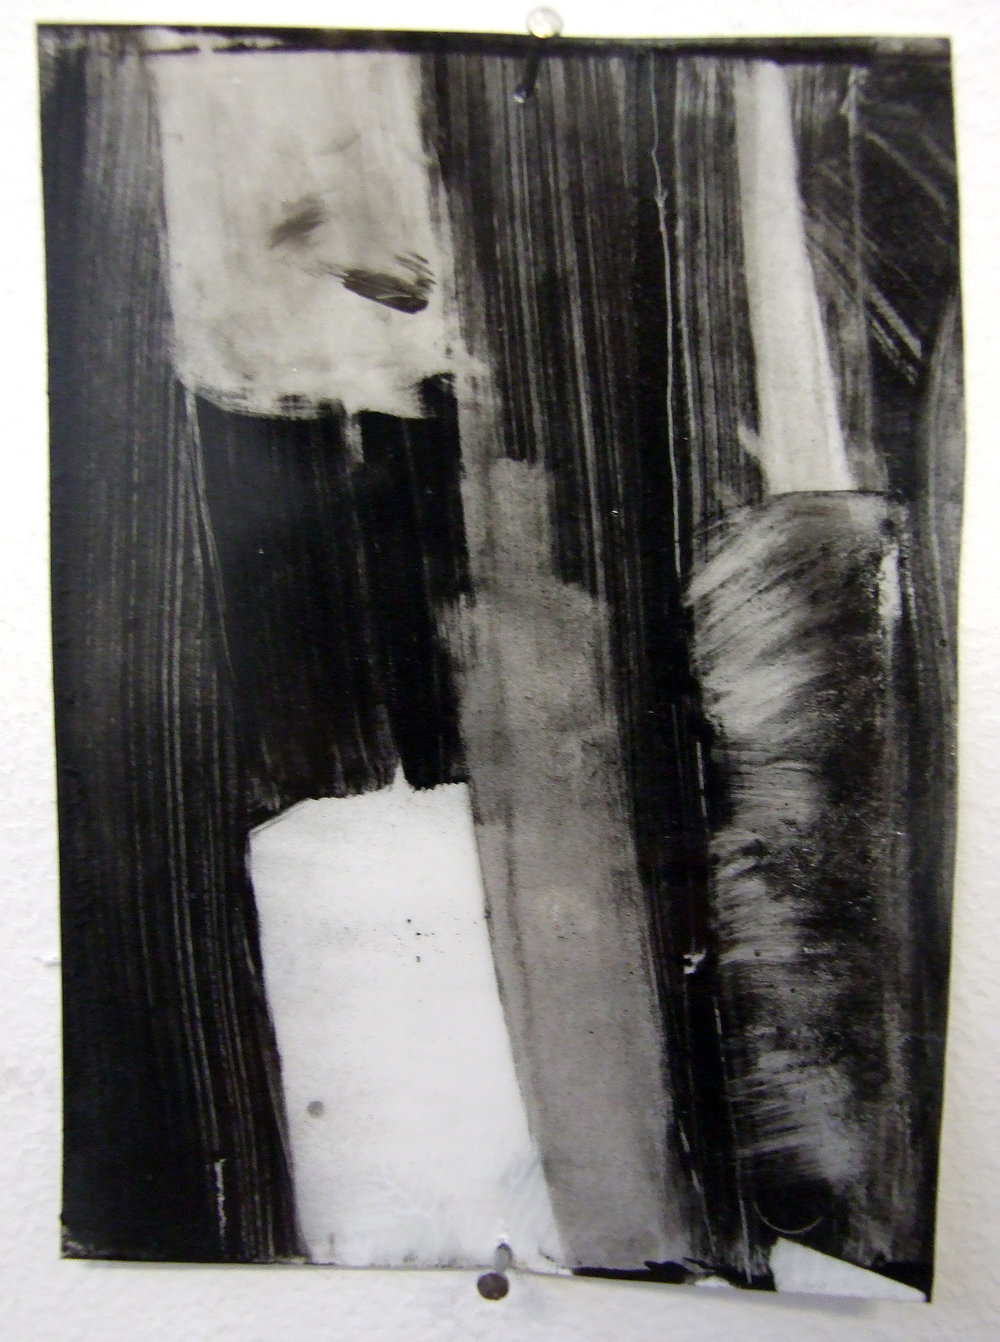 N.o 1, charcoal and gesso on mylar, 2012